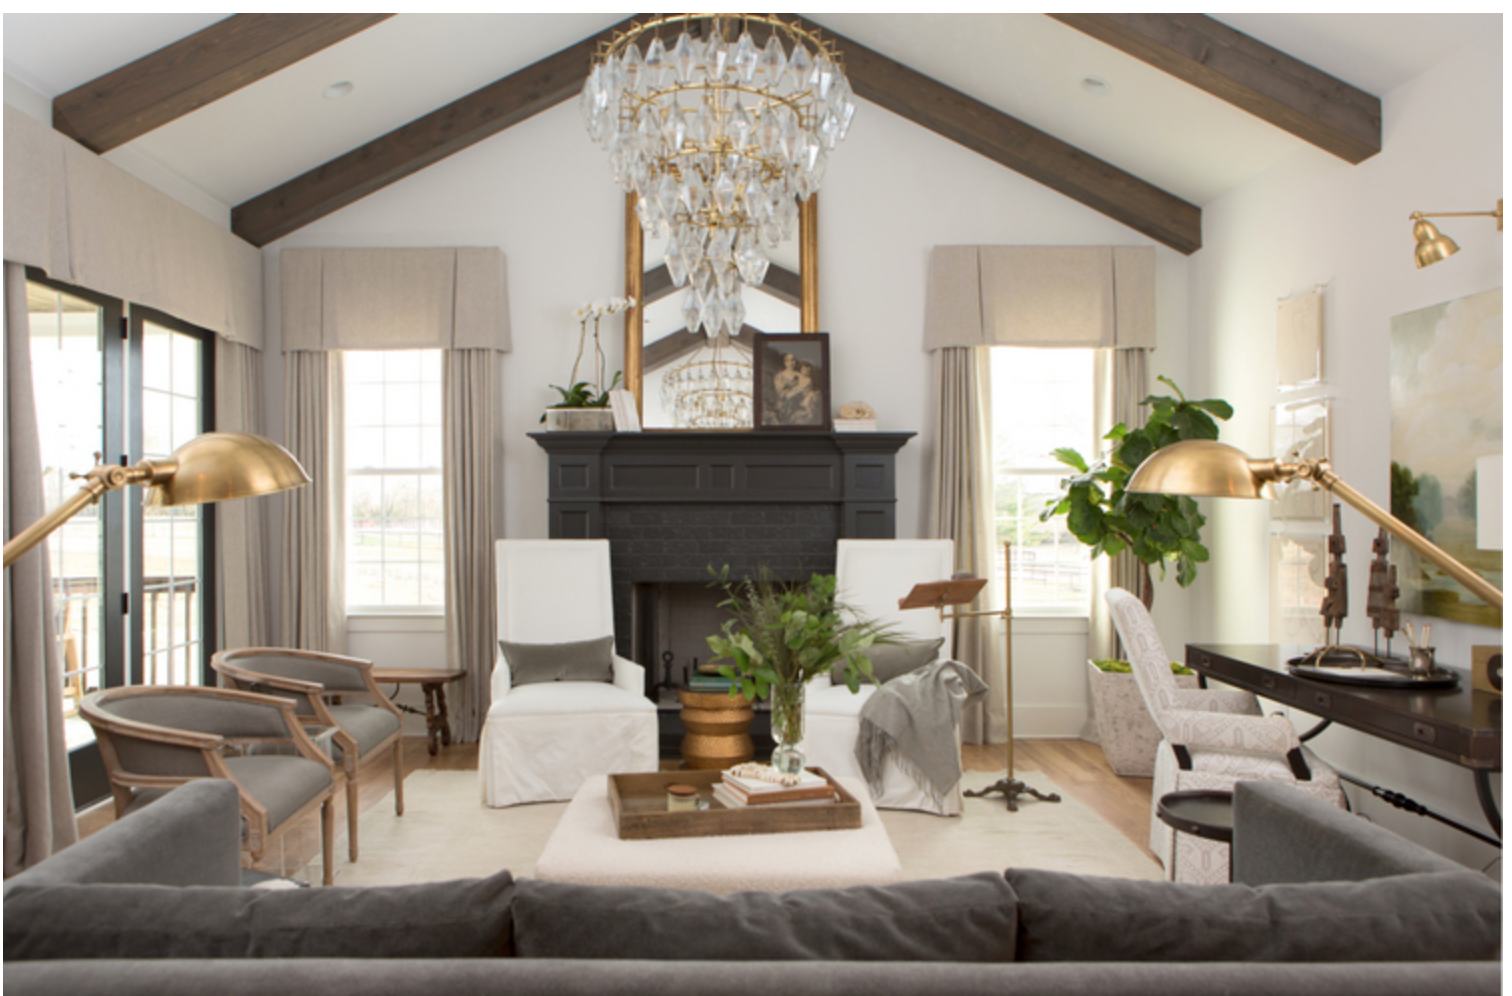 Home interior design color schemes pin by holly watson on lighting  pinterest  fireplace design